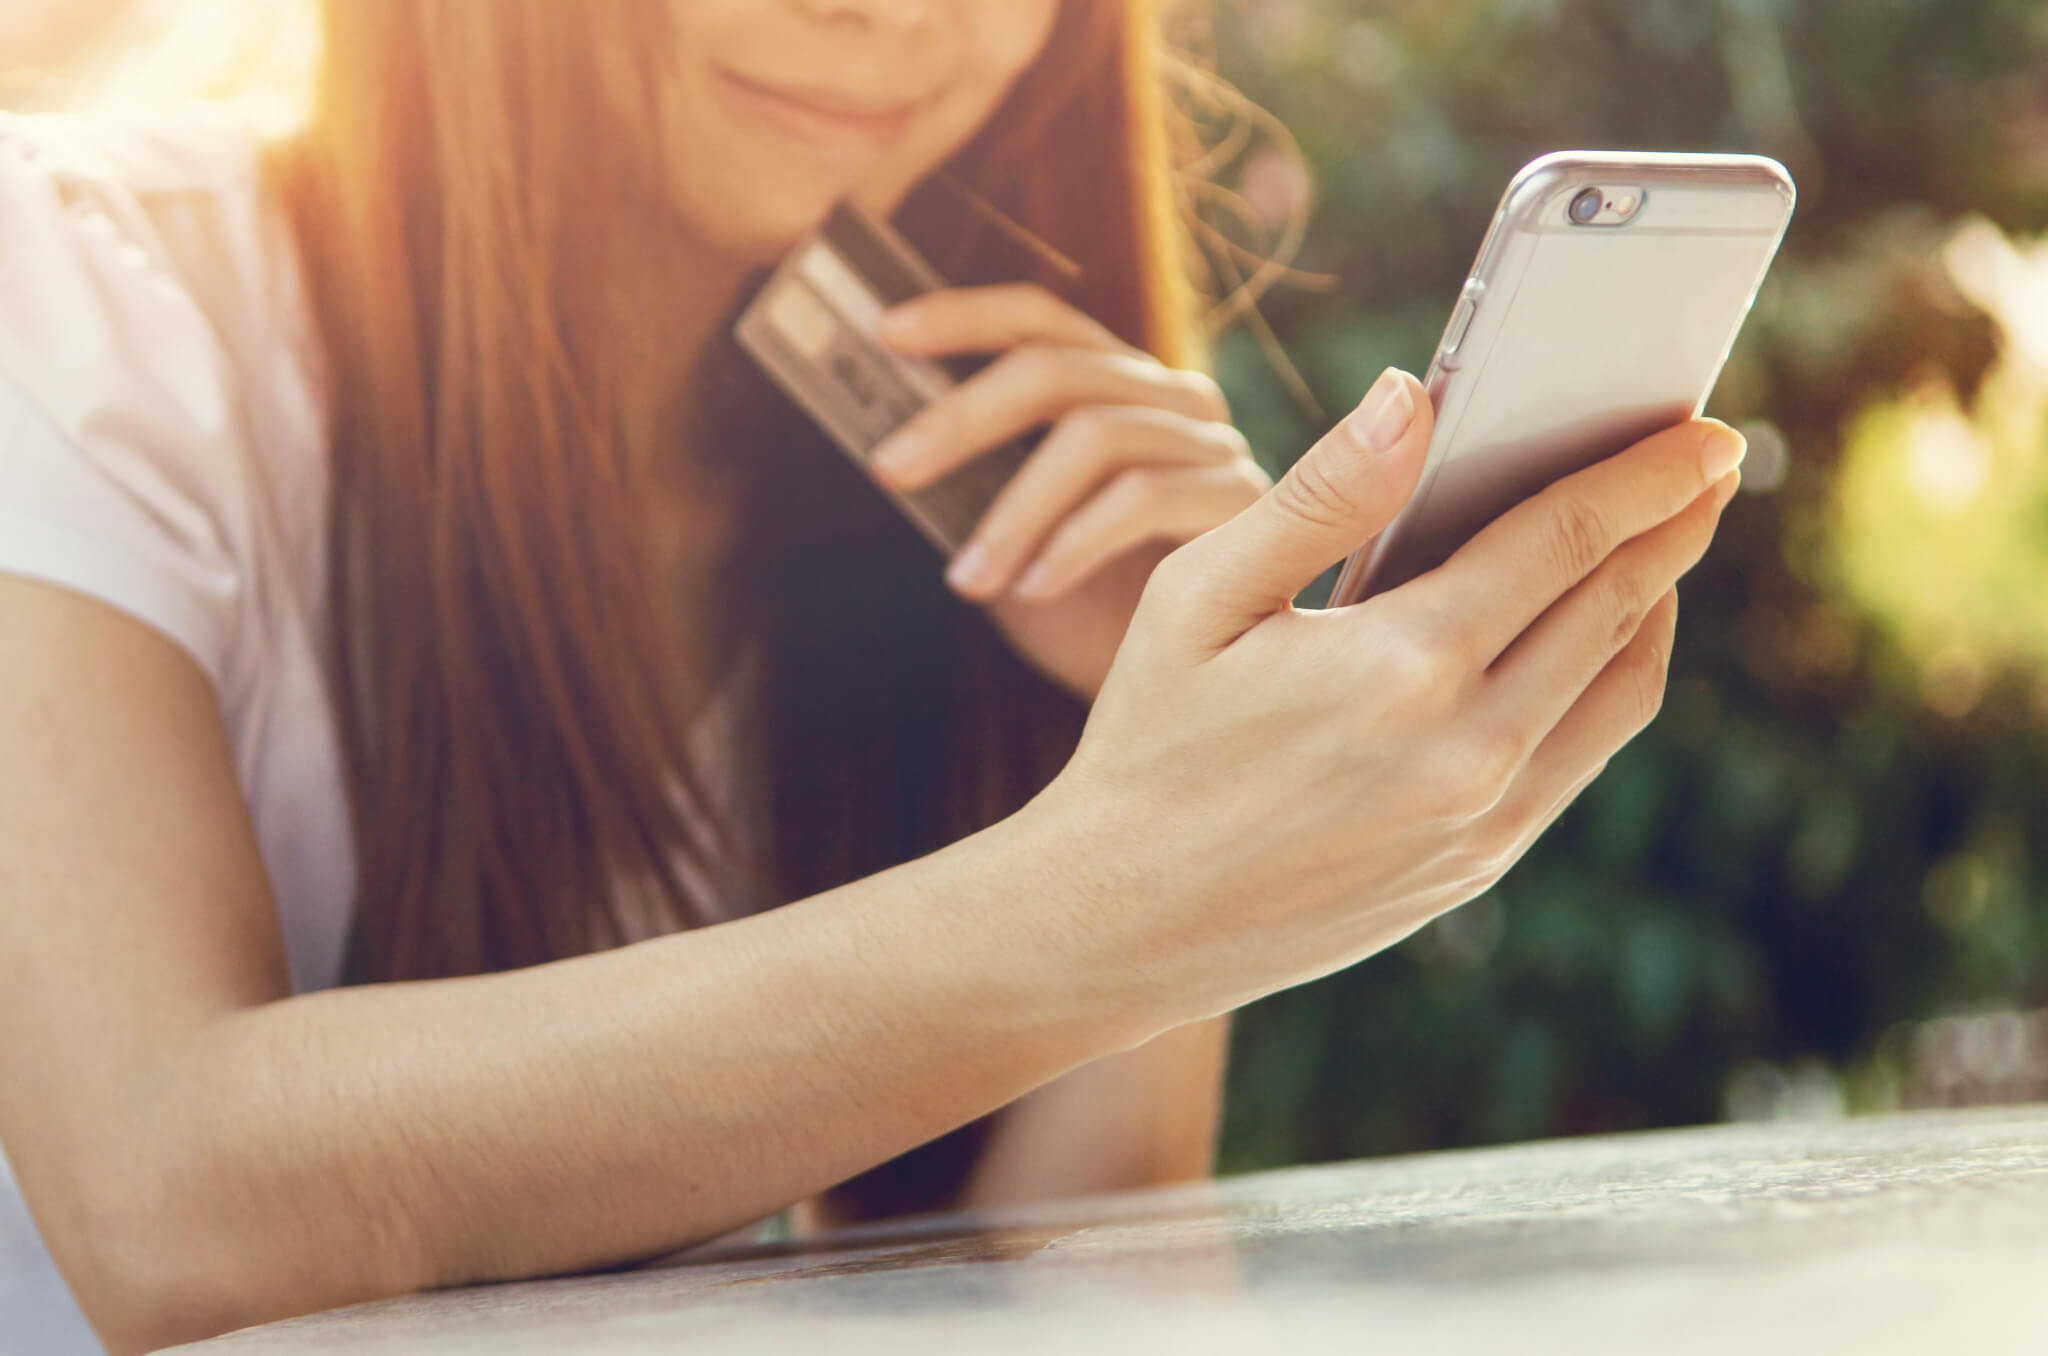 Girl holding iPhone and credit card outside.